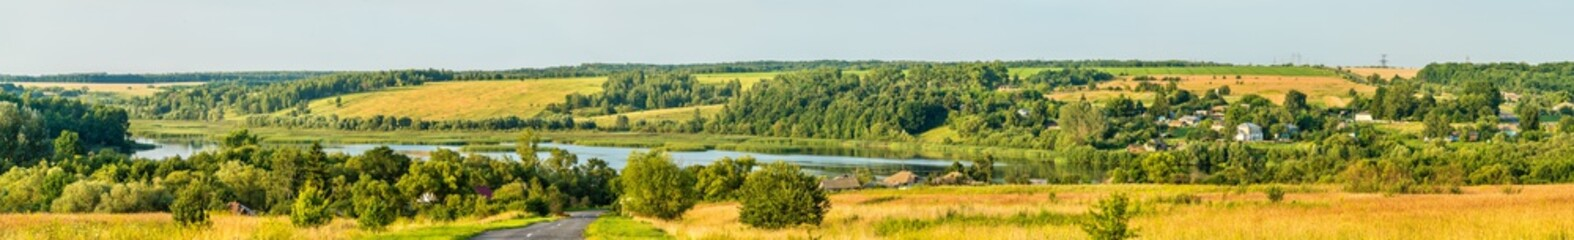 Panorama of Glazovo, a typical village on the Central Russian Upland, Kursk region of Russia